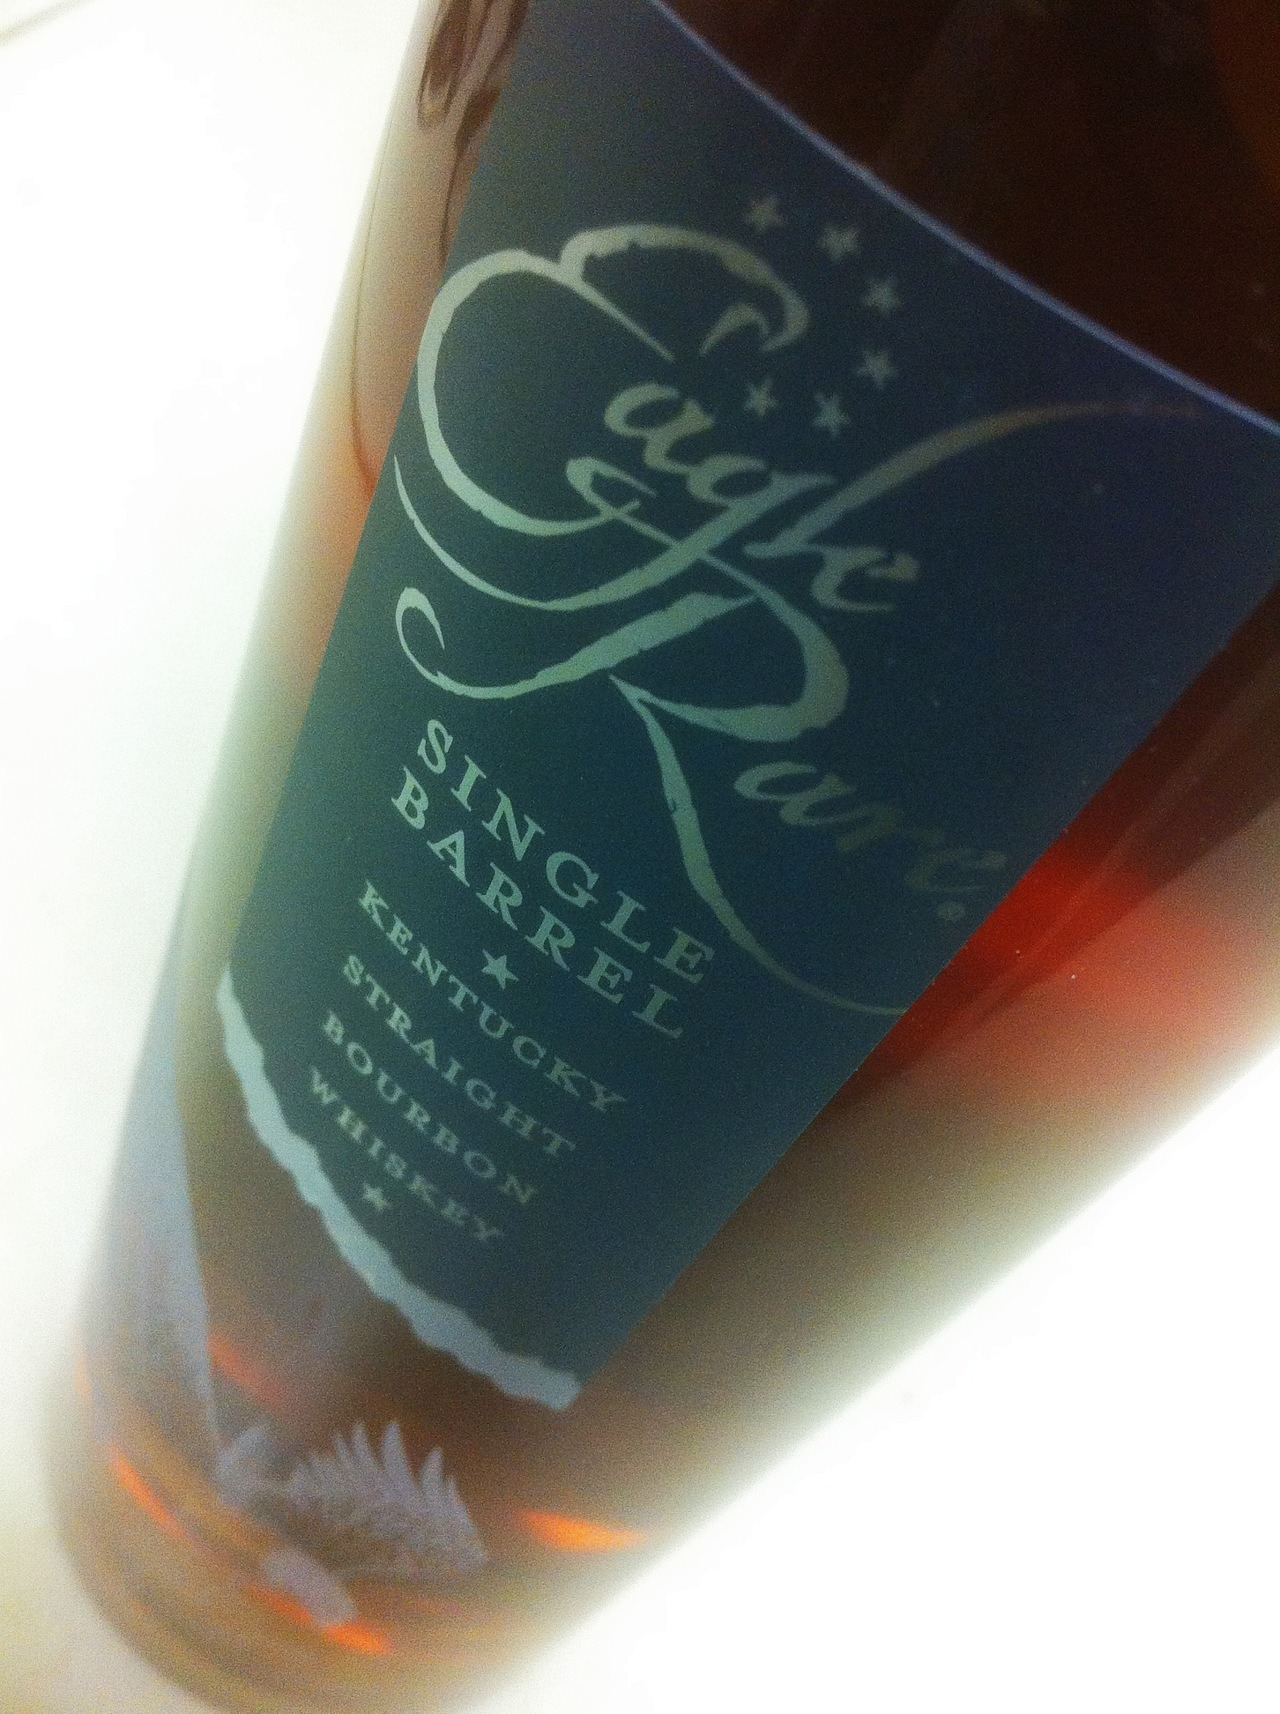 Eagle Rare 10 Year Old Bourbon = liquid awesomeness. Read more about this special bourbon on The Trot Line H E R E >